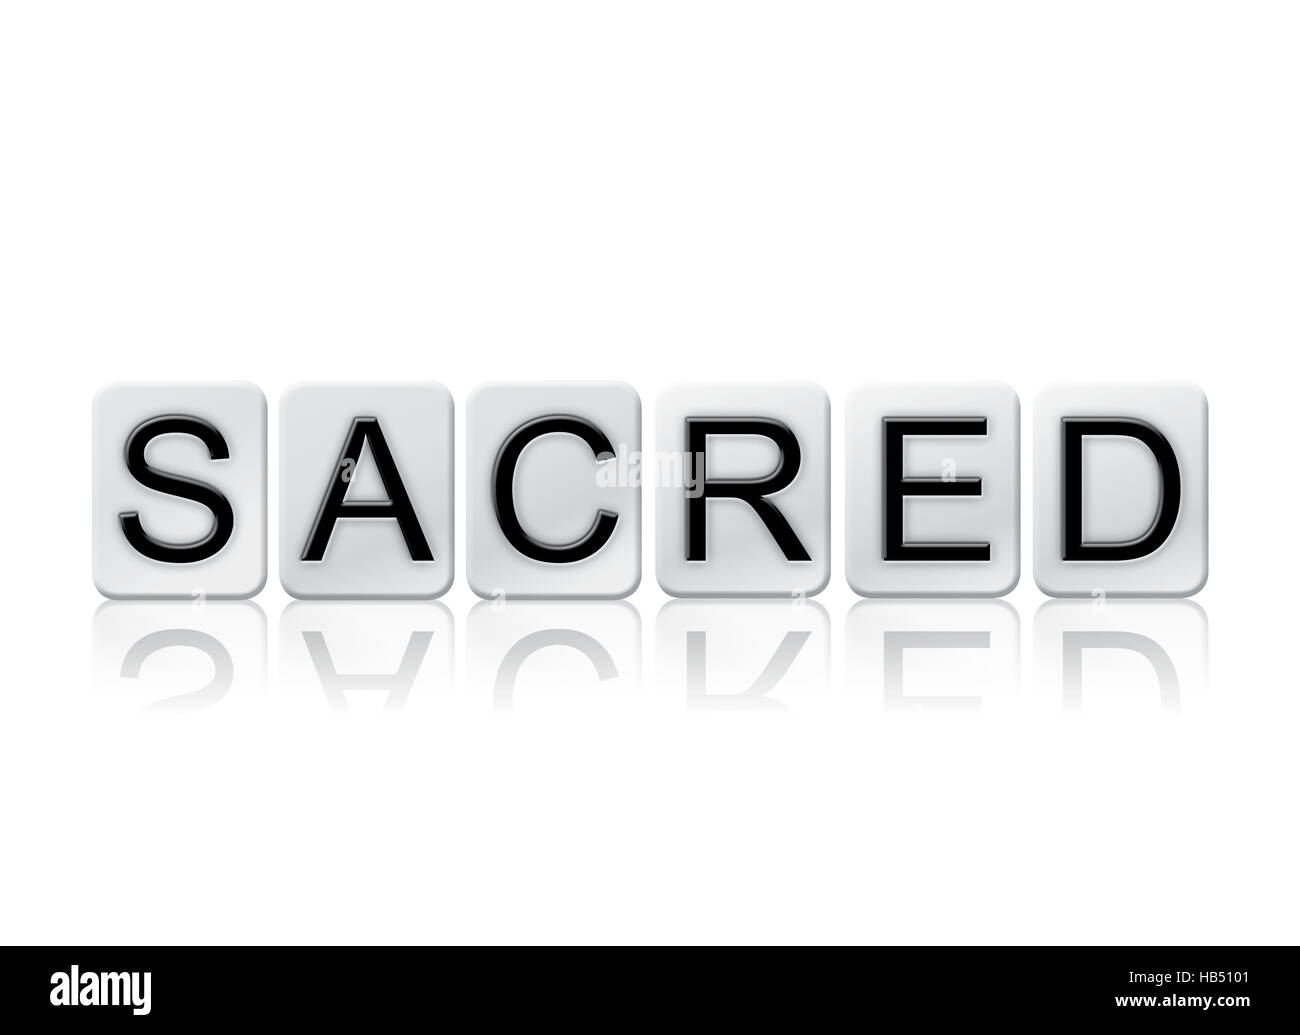 The word 'Sacred' written in tile letters isolated on a white background. - Stock Image